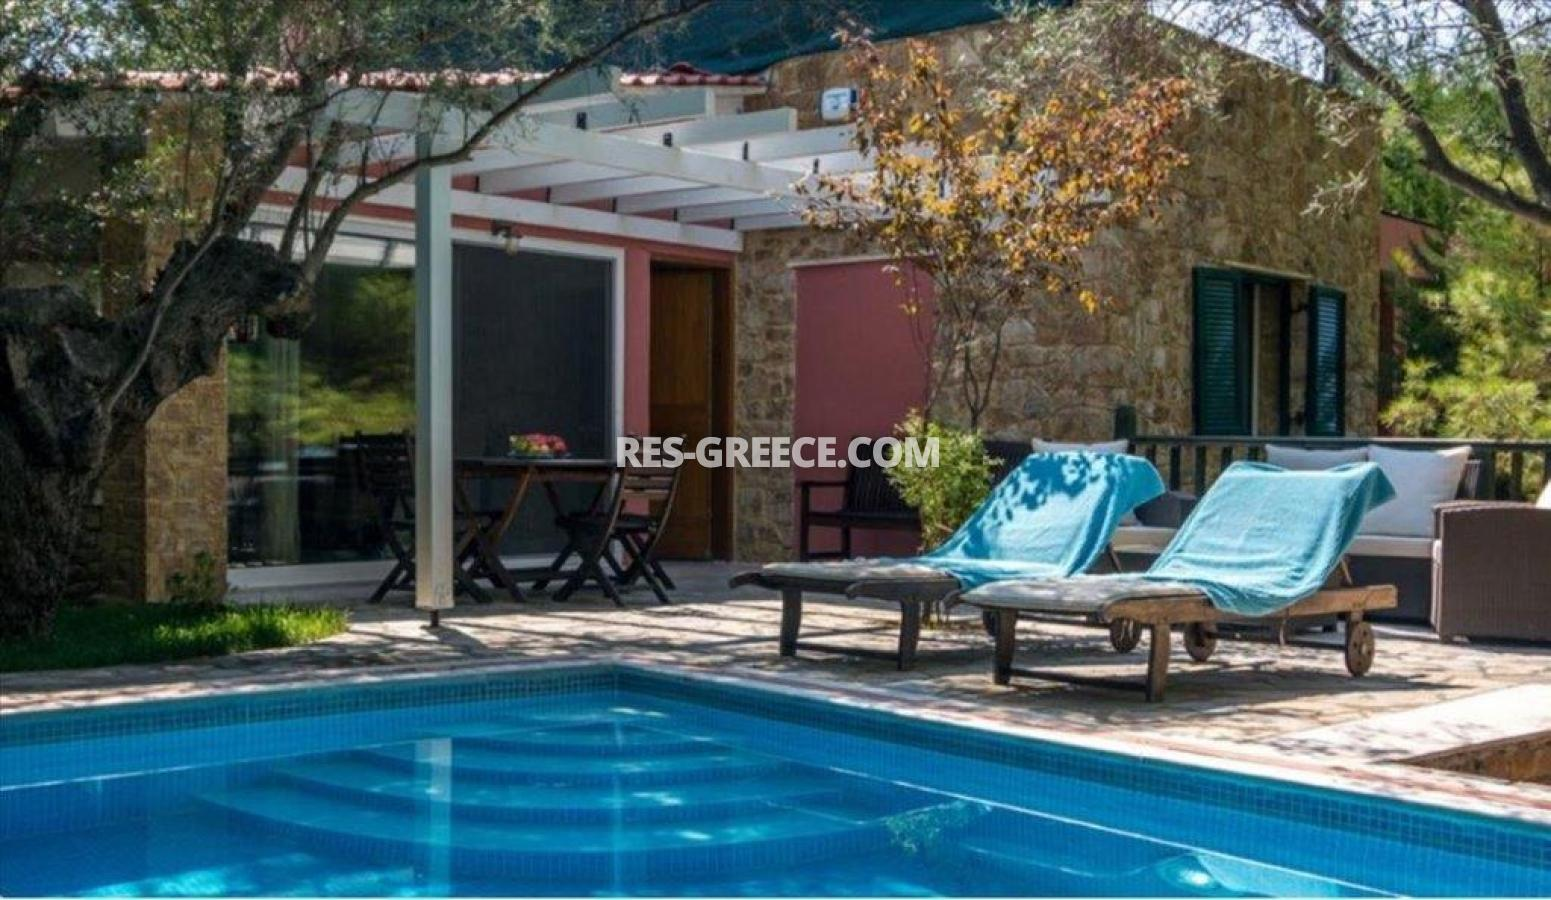 Ilectra, Halkidiki-Sithonia, Greece - cozy cottage with a pool by the sea - Photo 7